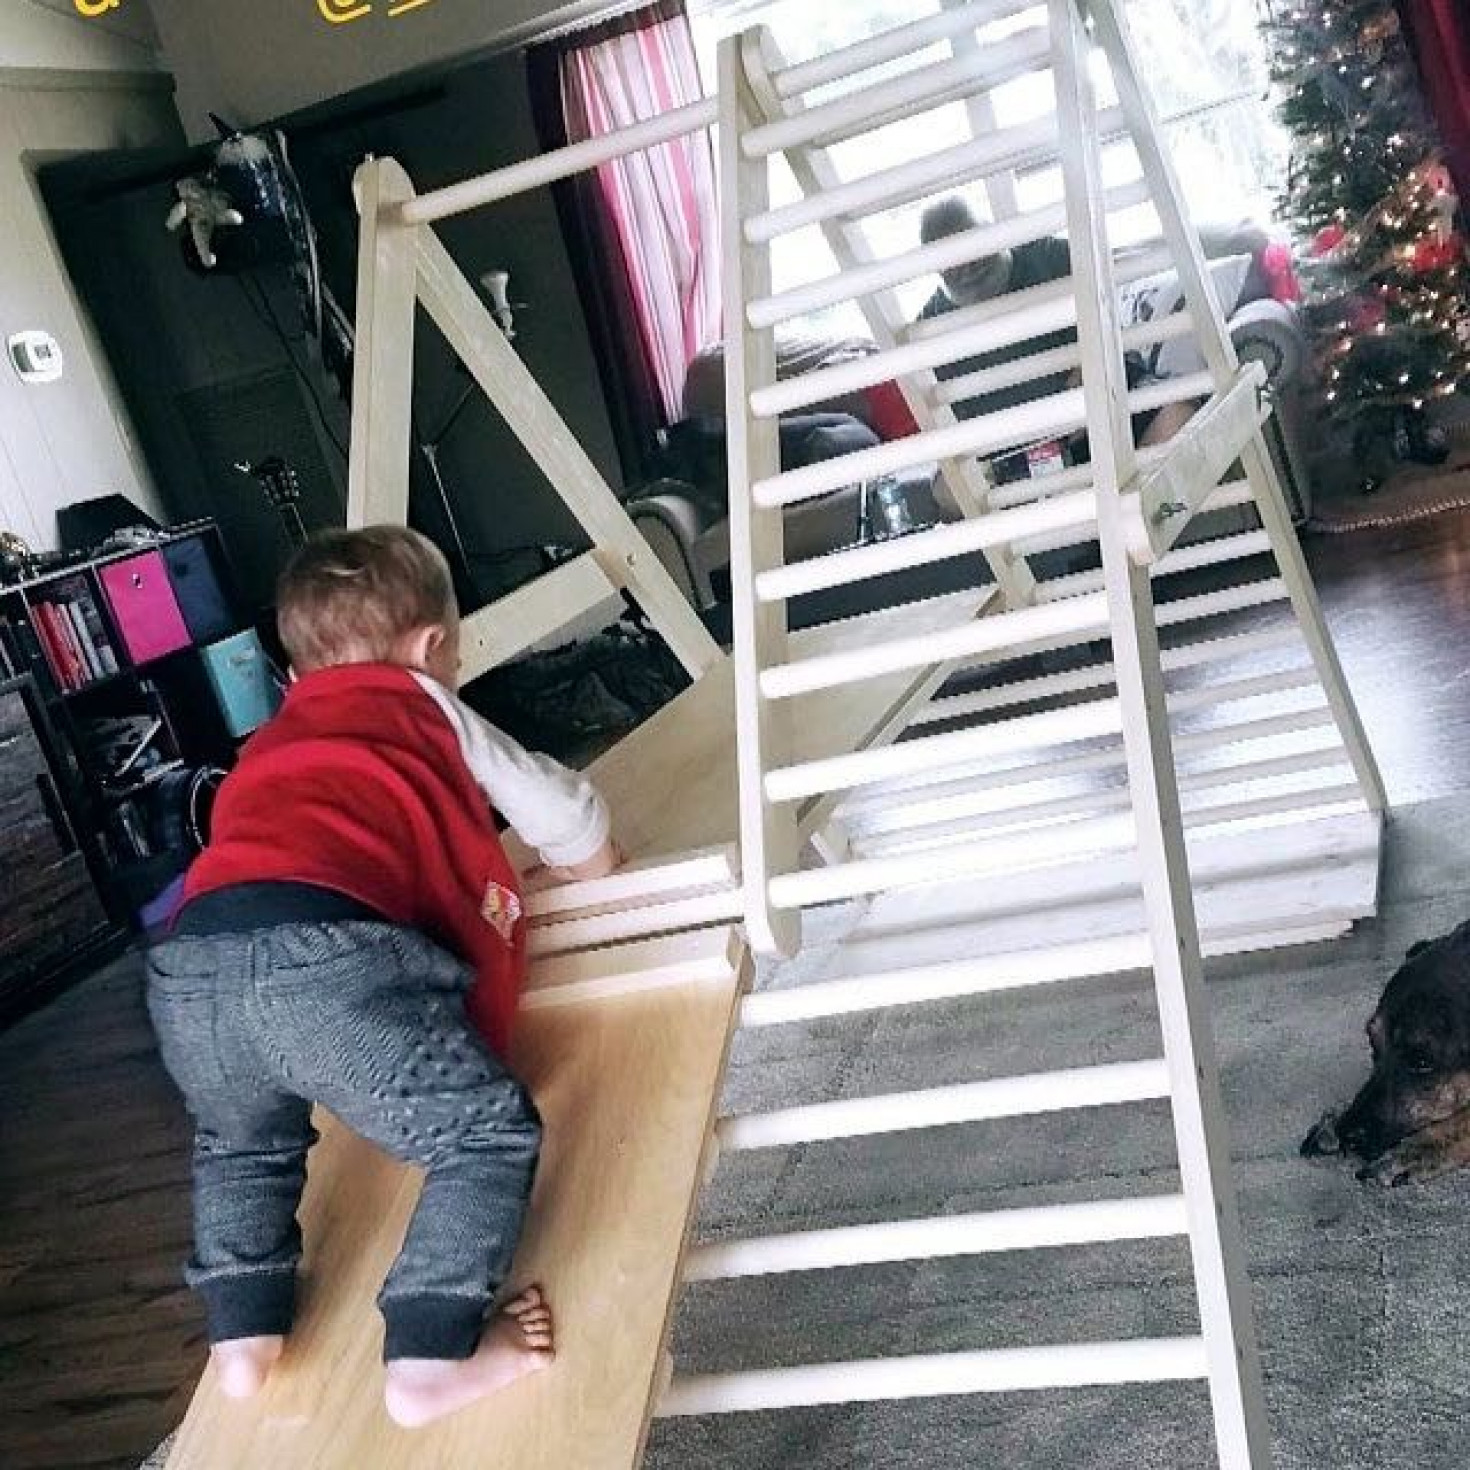 A customized climbing ladder for toddlers